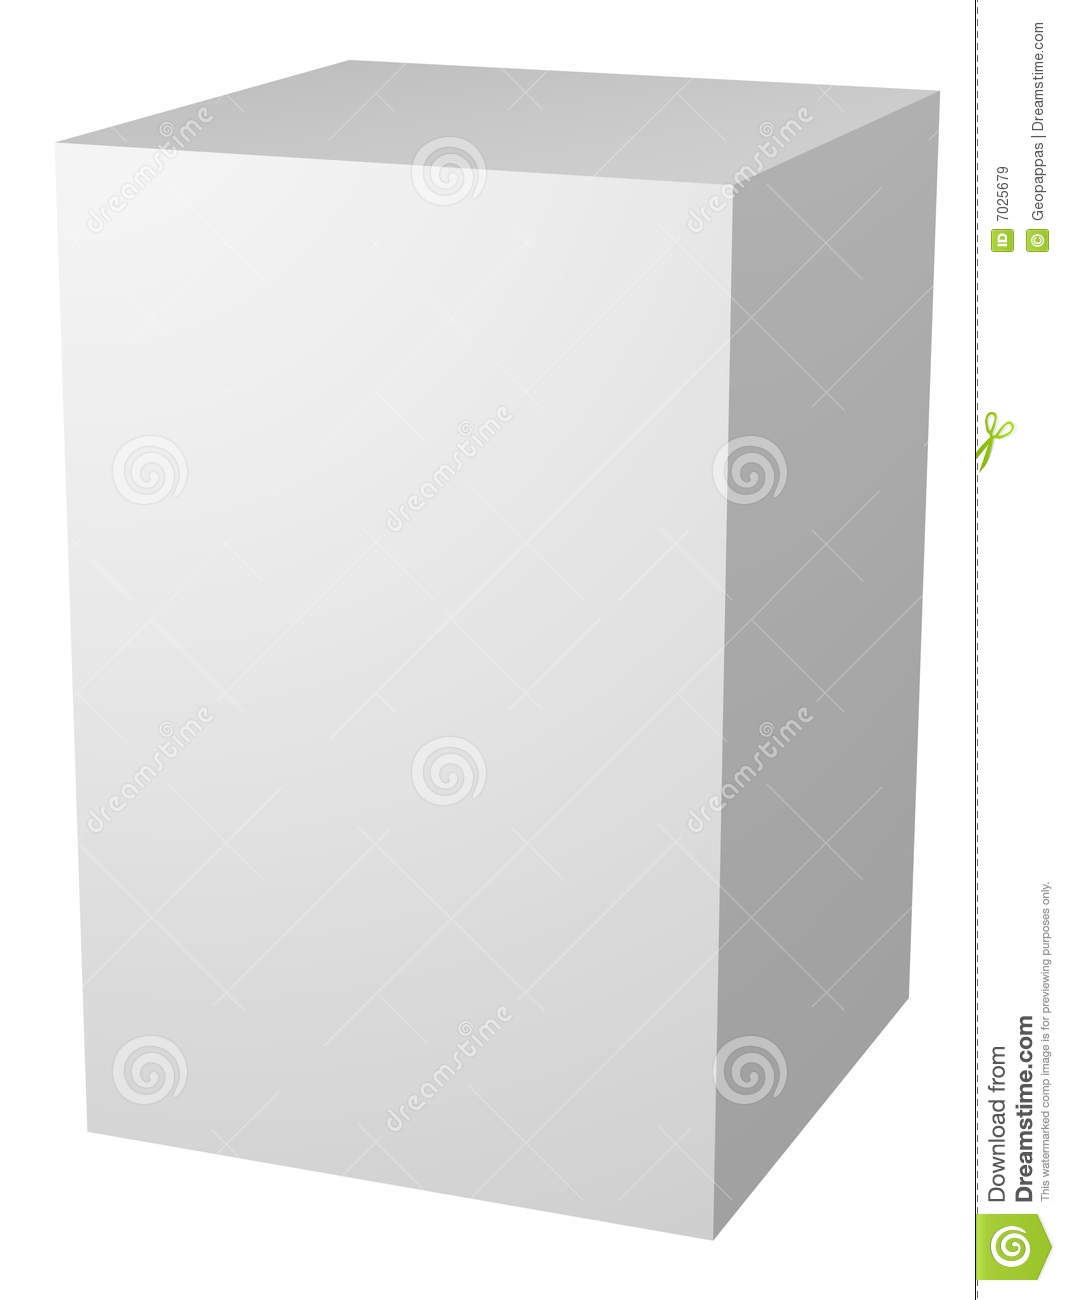 Plain Blank White Box Packaging Royalty Free Stock Images ...